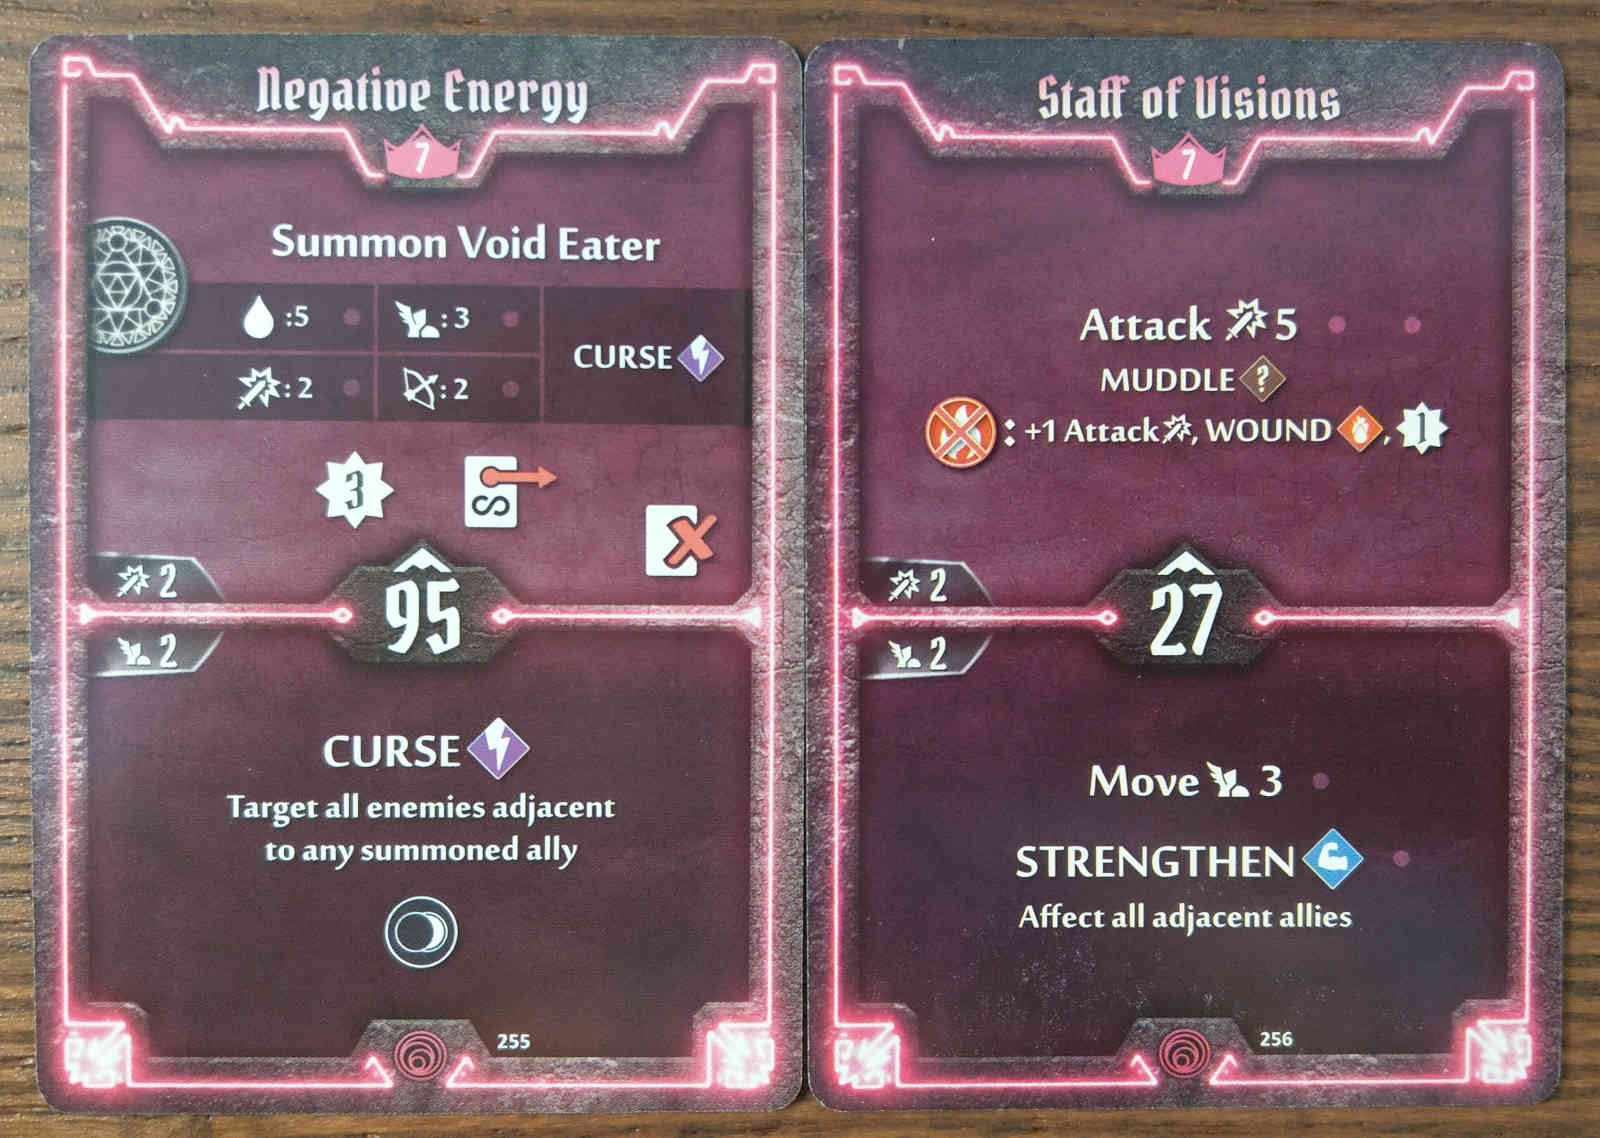 Level 7 Summoner cards - Negative Energy and Staff of Visions